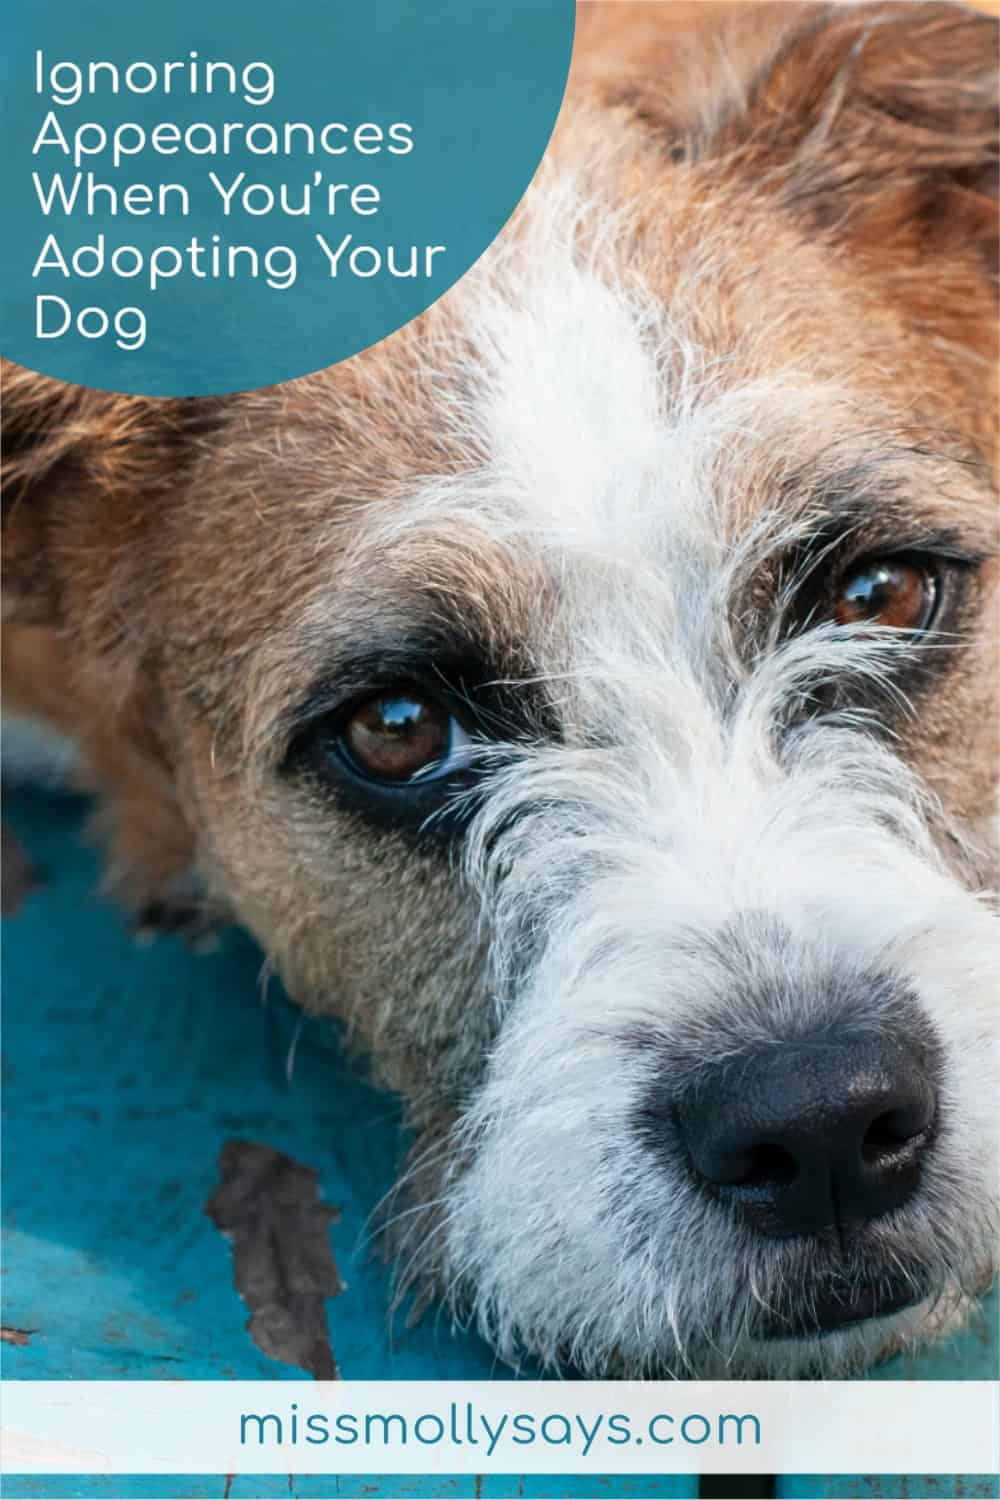 Ignoring Appearances When You're Adopting Your Dog